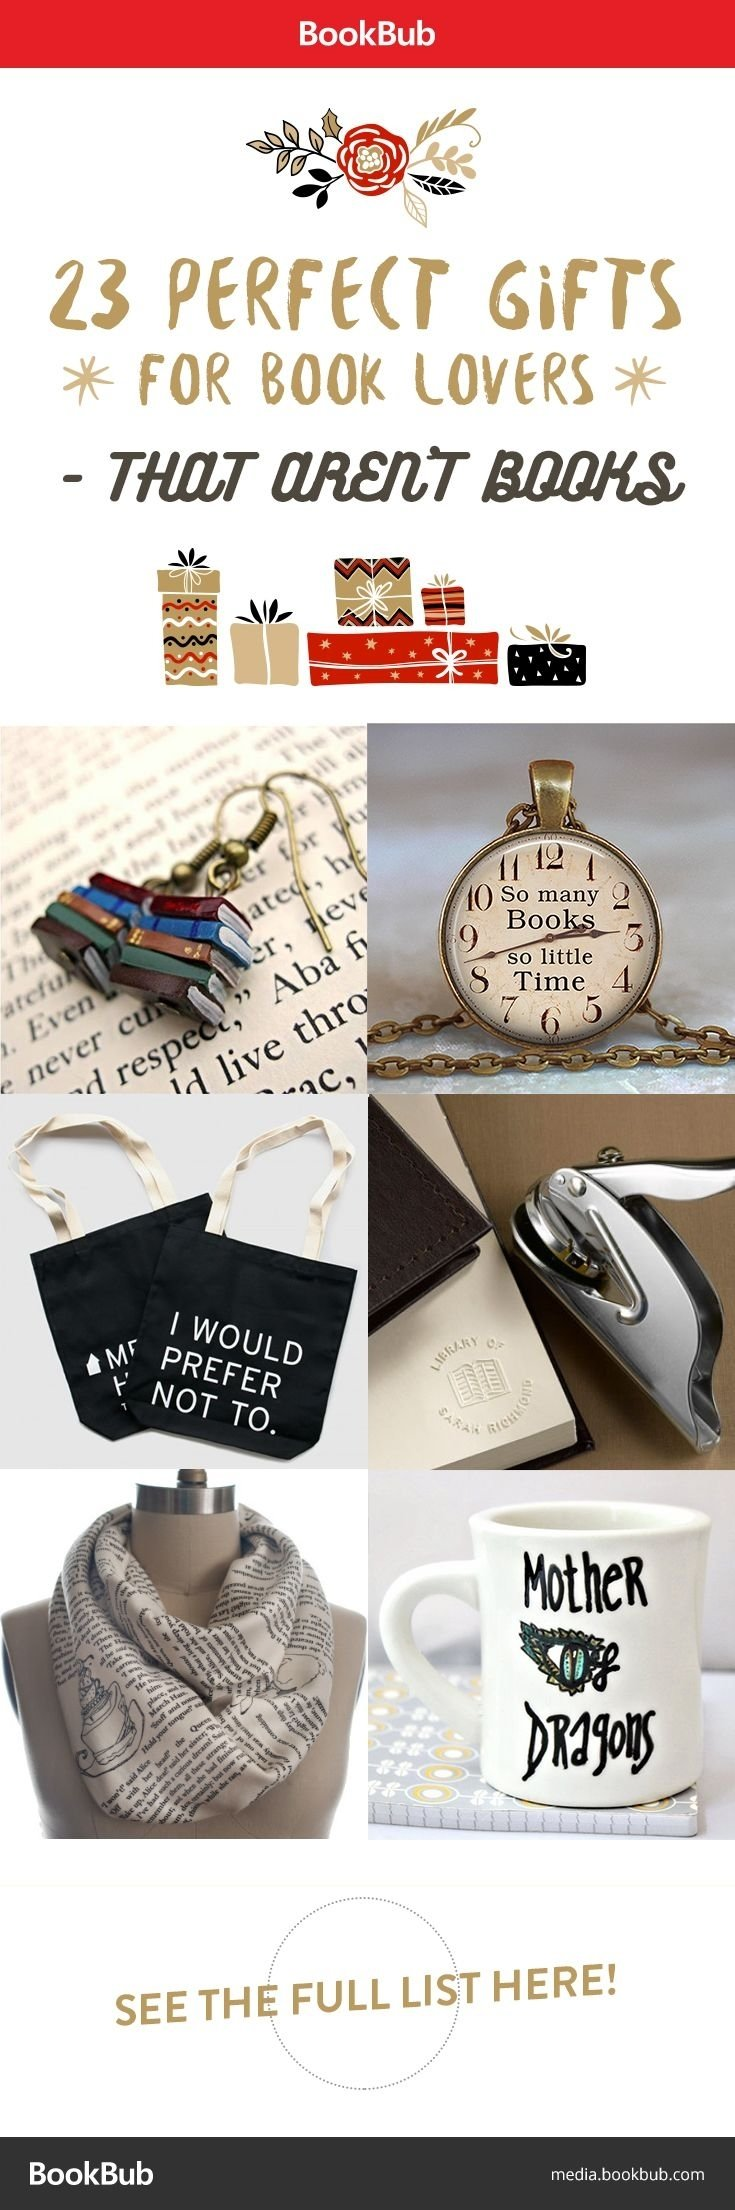 10 Beautiful Gift Ideas For Movie Lovers 321 best gift ideas for book lovers images on pinterest book worms